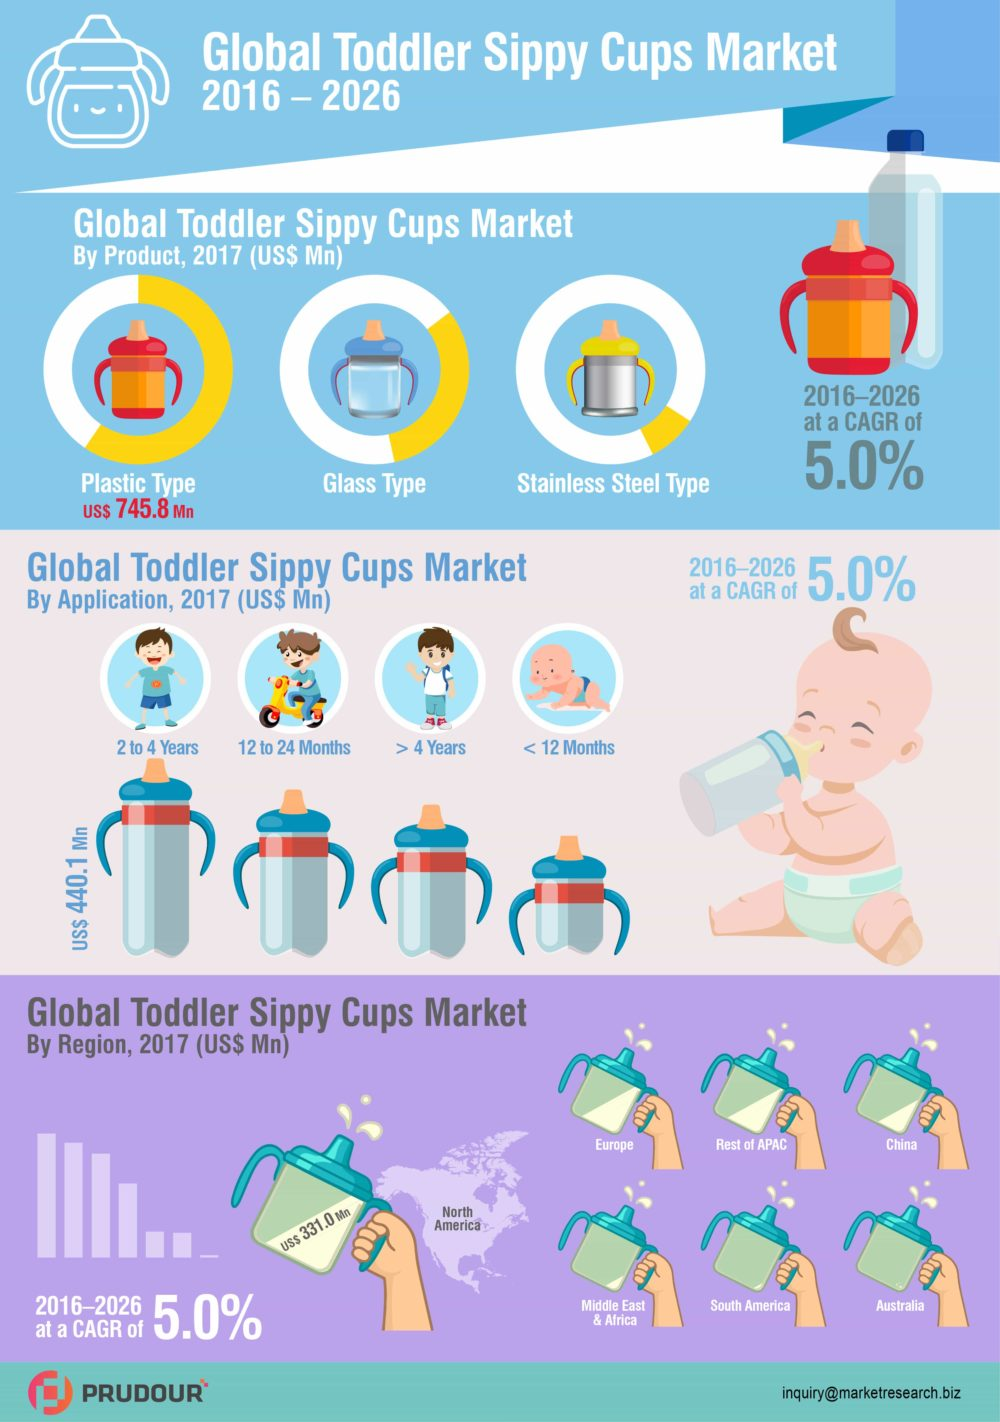 To Register CAGR Of 5.0%: Global Toddler Sippy Cups Market Expected Significant CAGR of 5.0% Between 2017 to 2026